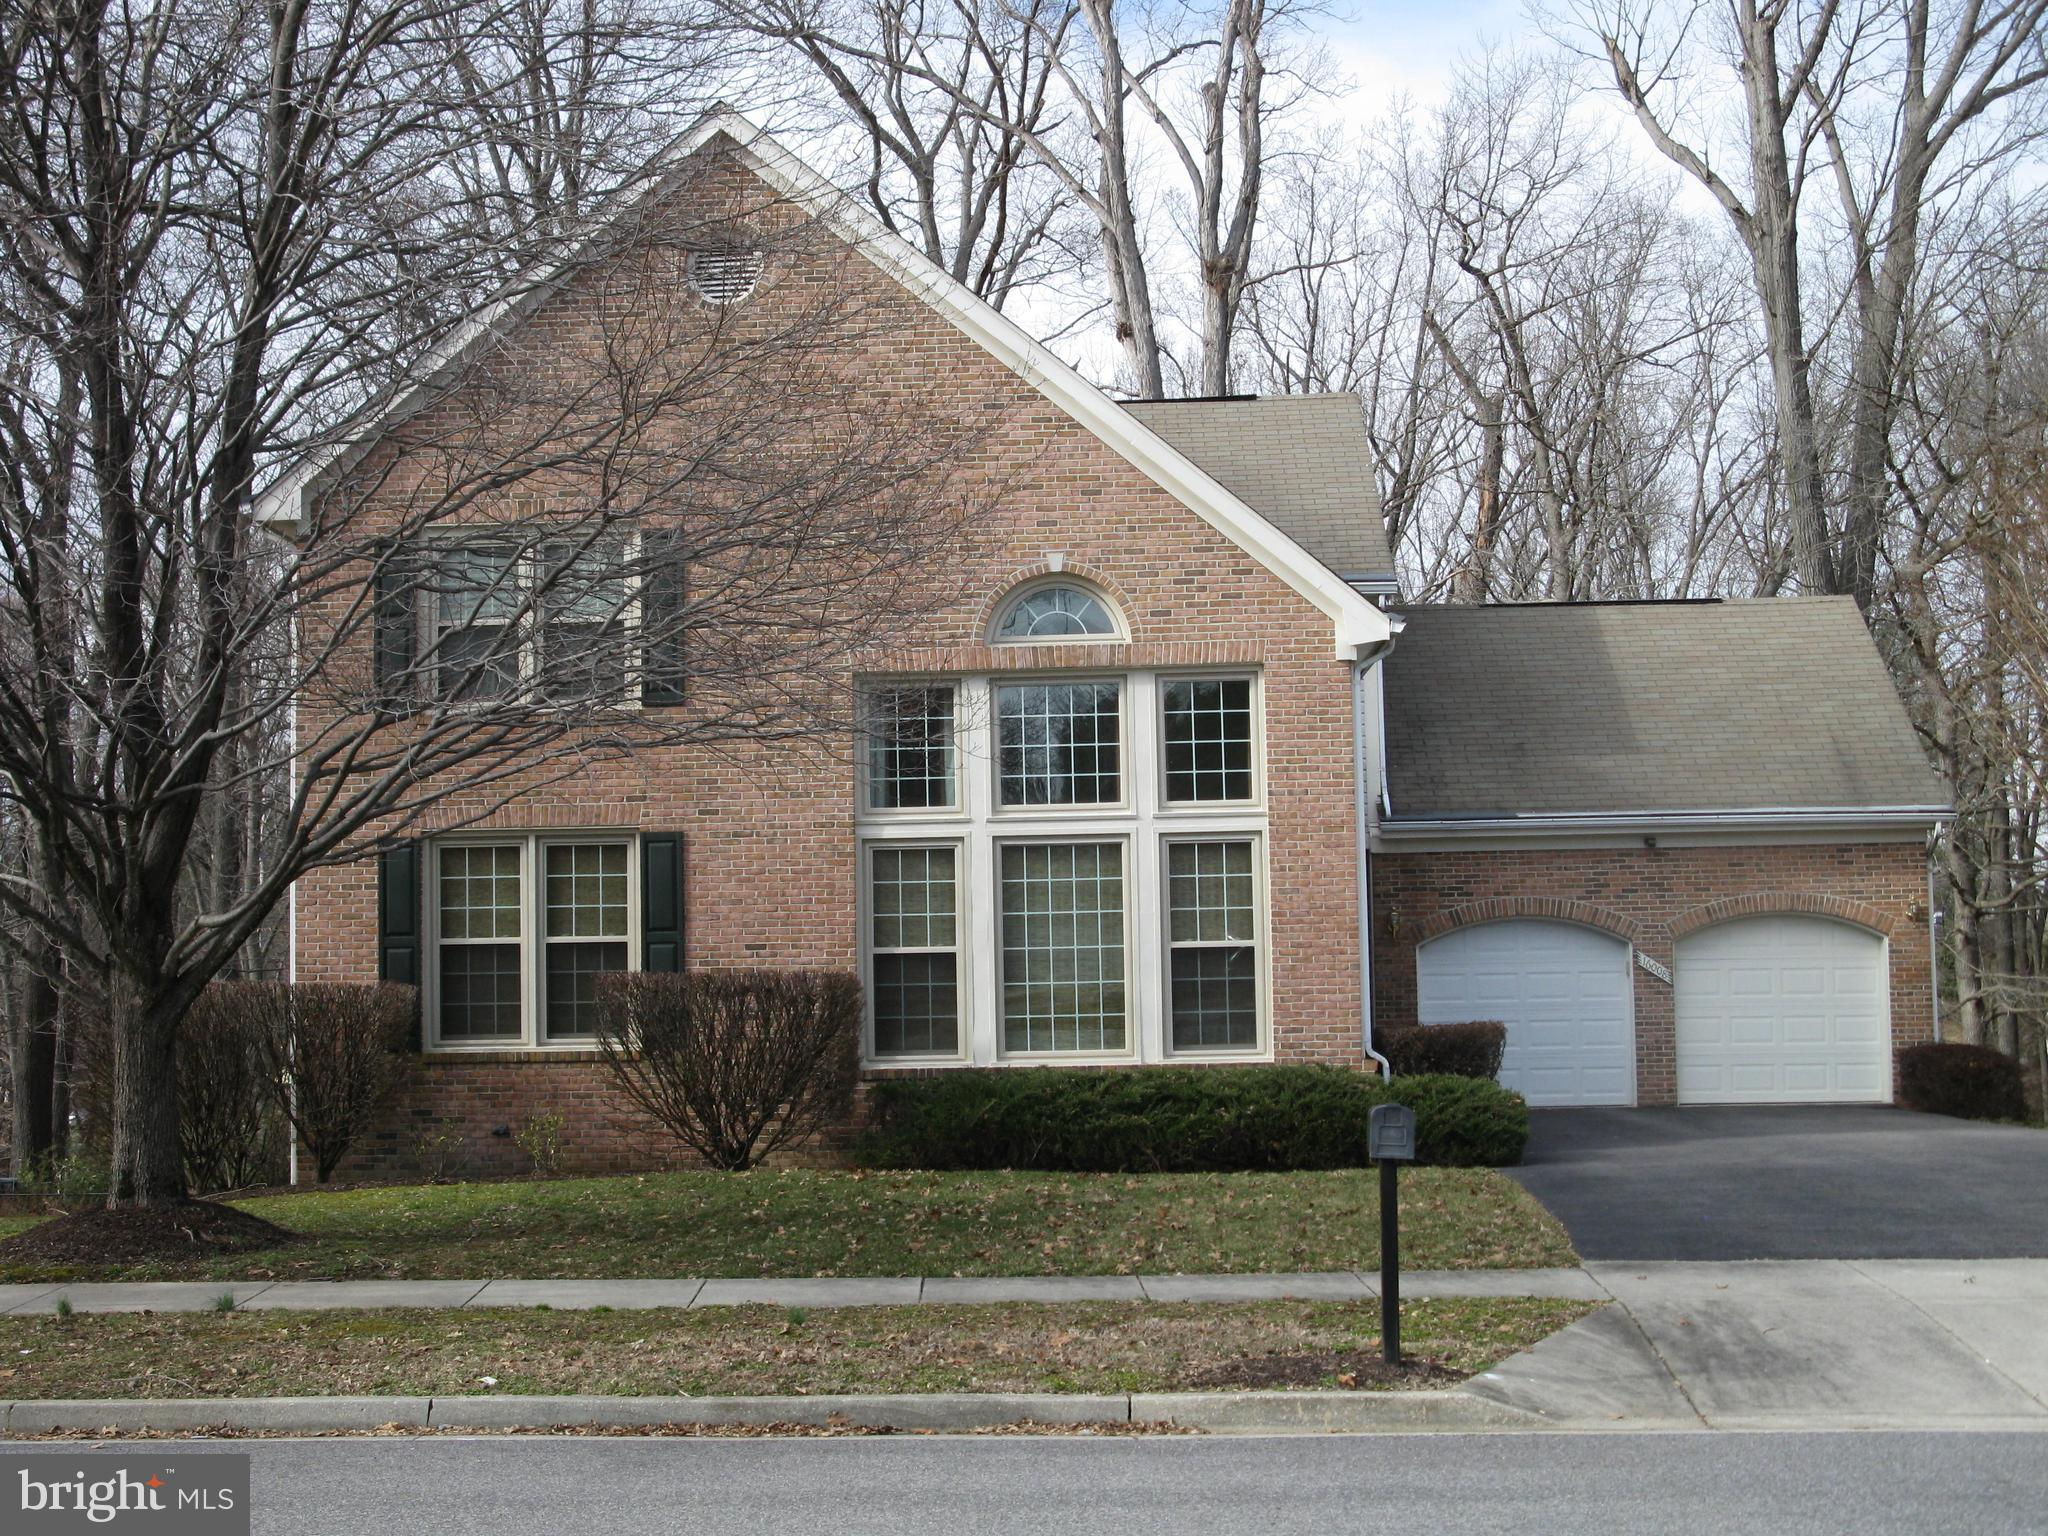 16008 PENNSBURY DRIVE, BOWIE, MD 20716